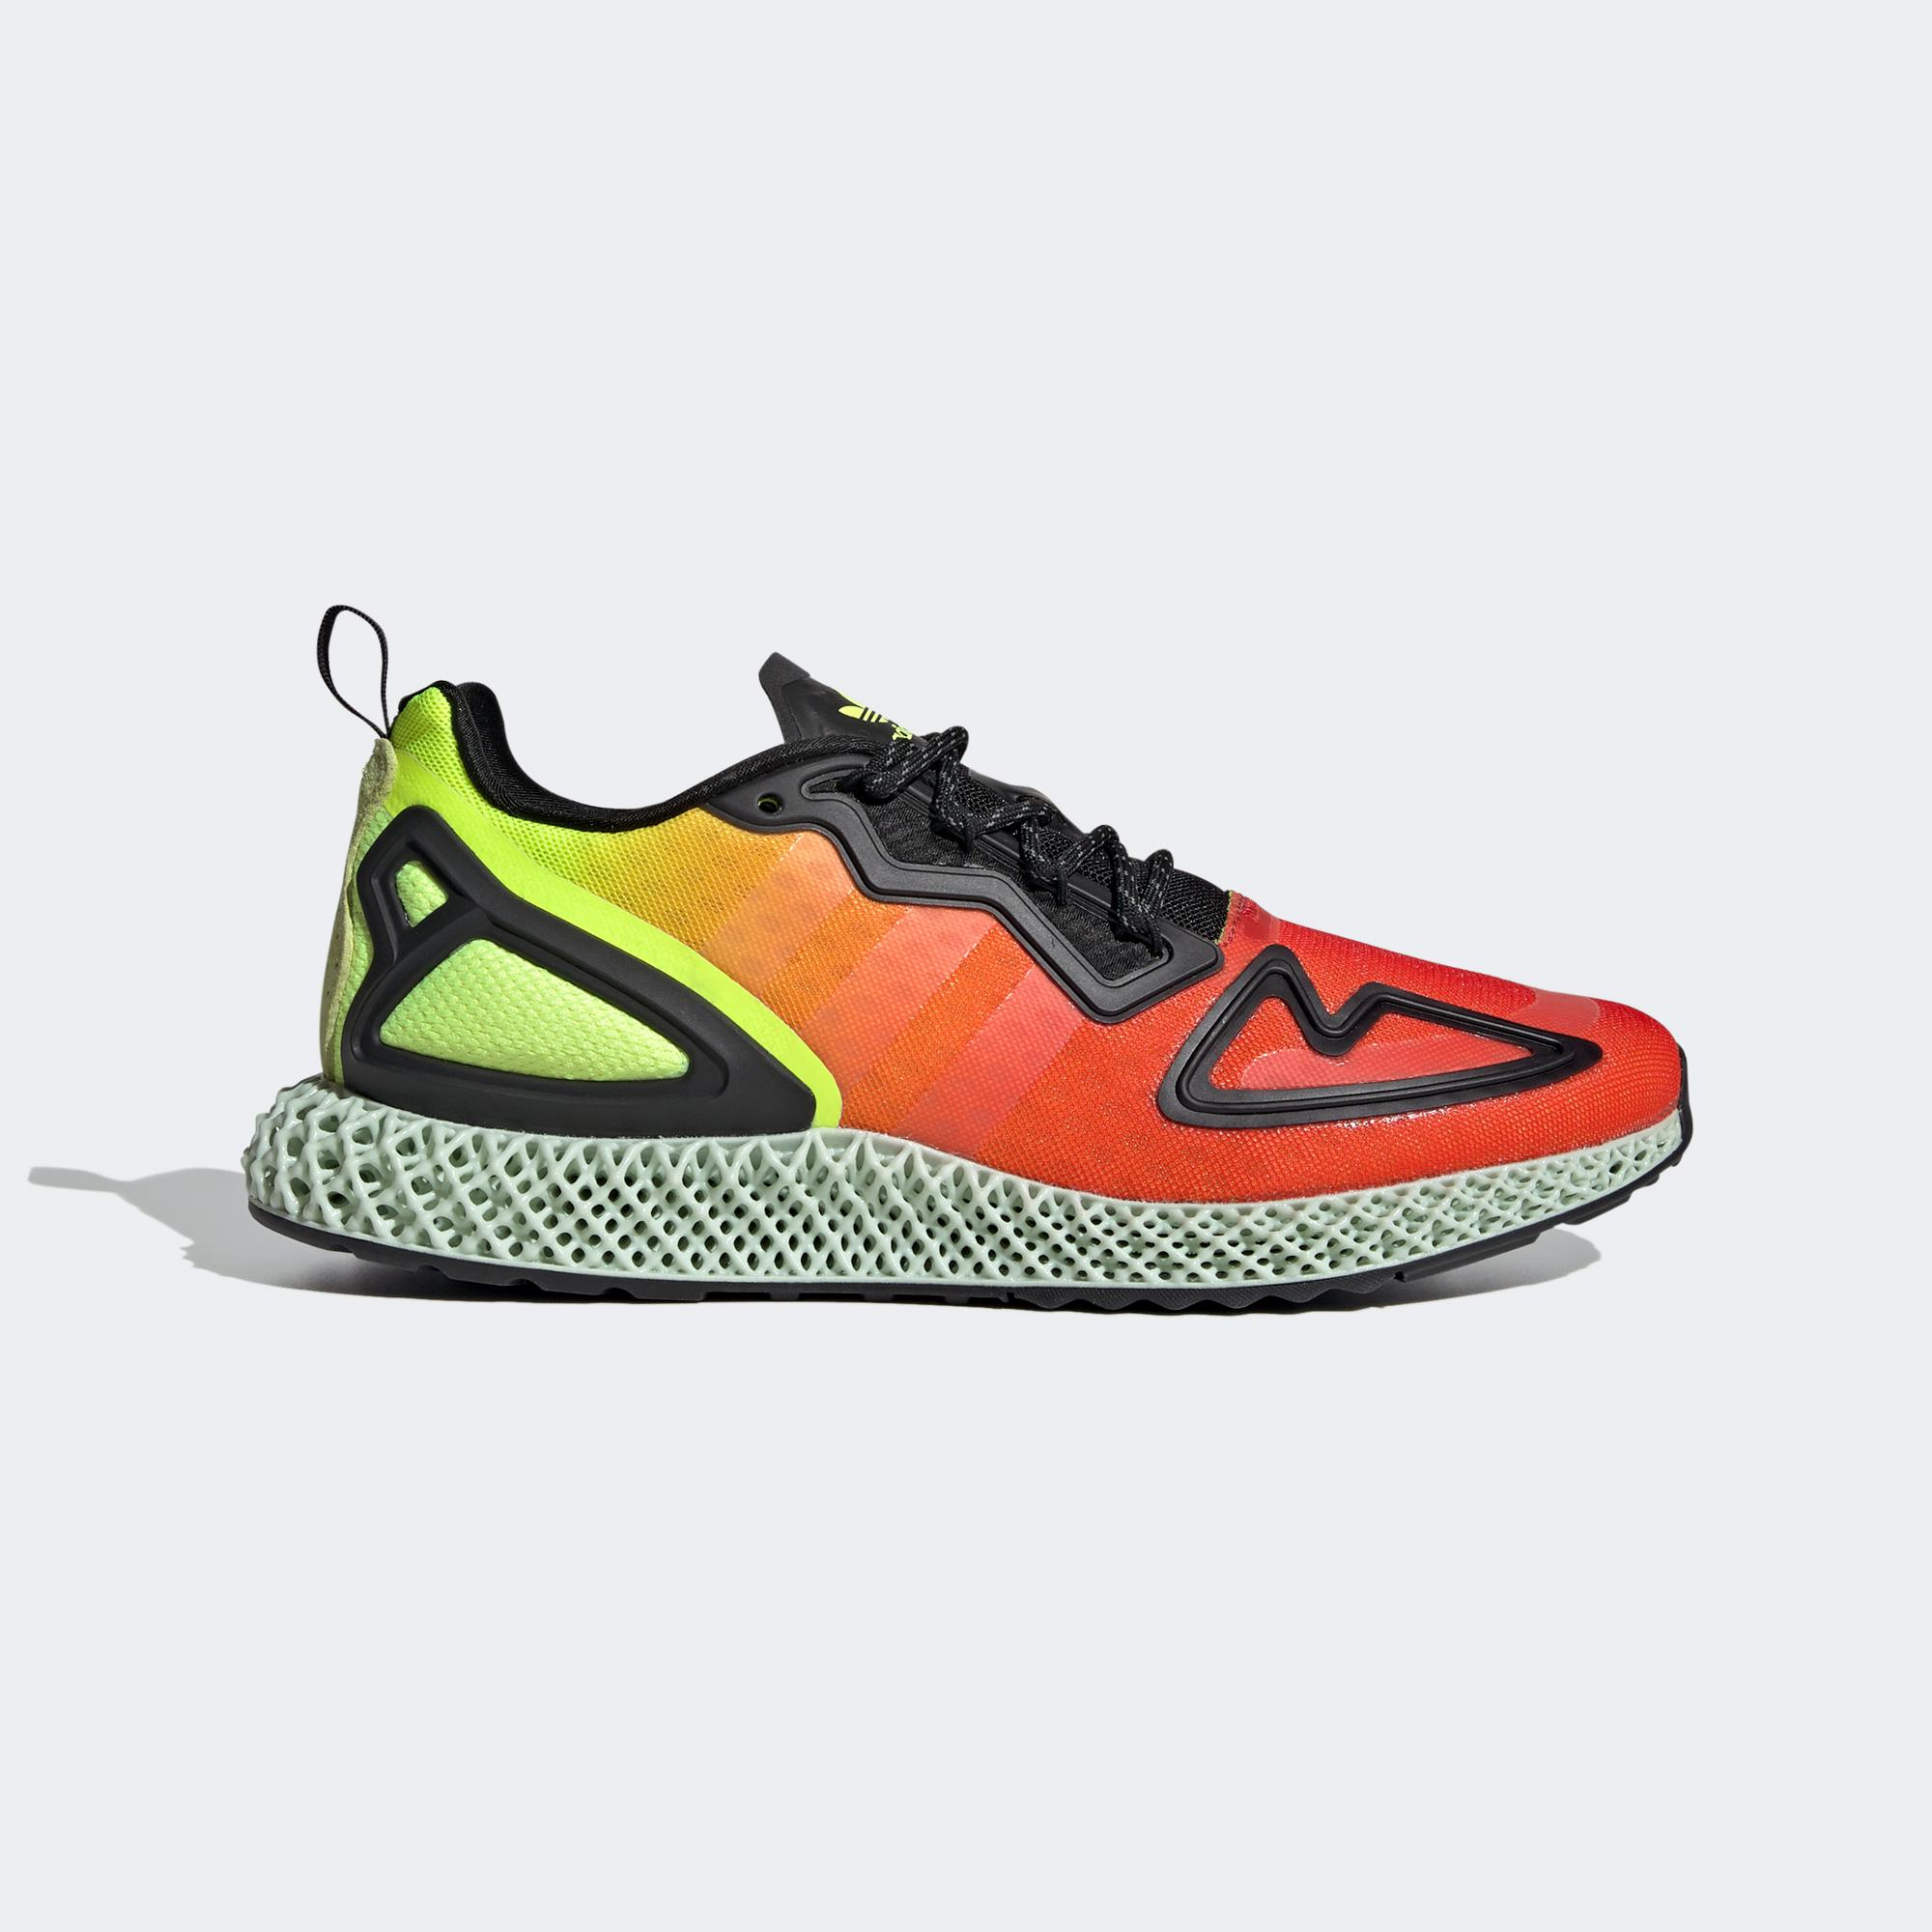 ZX 2K 4D 經典鞋